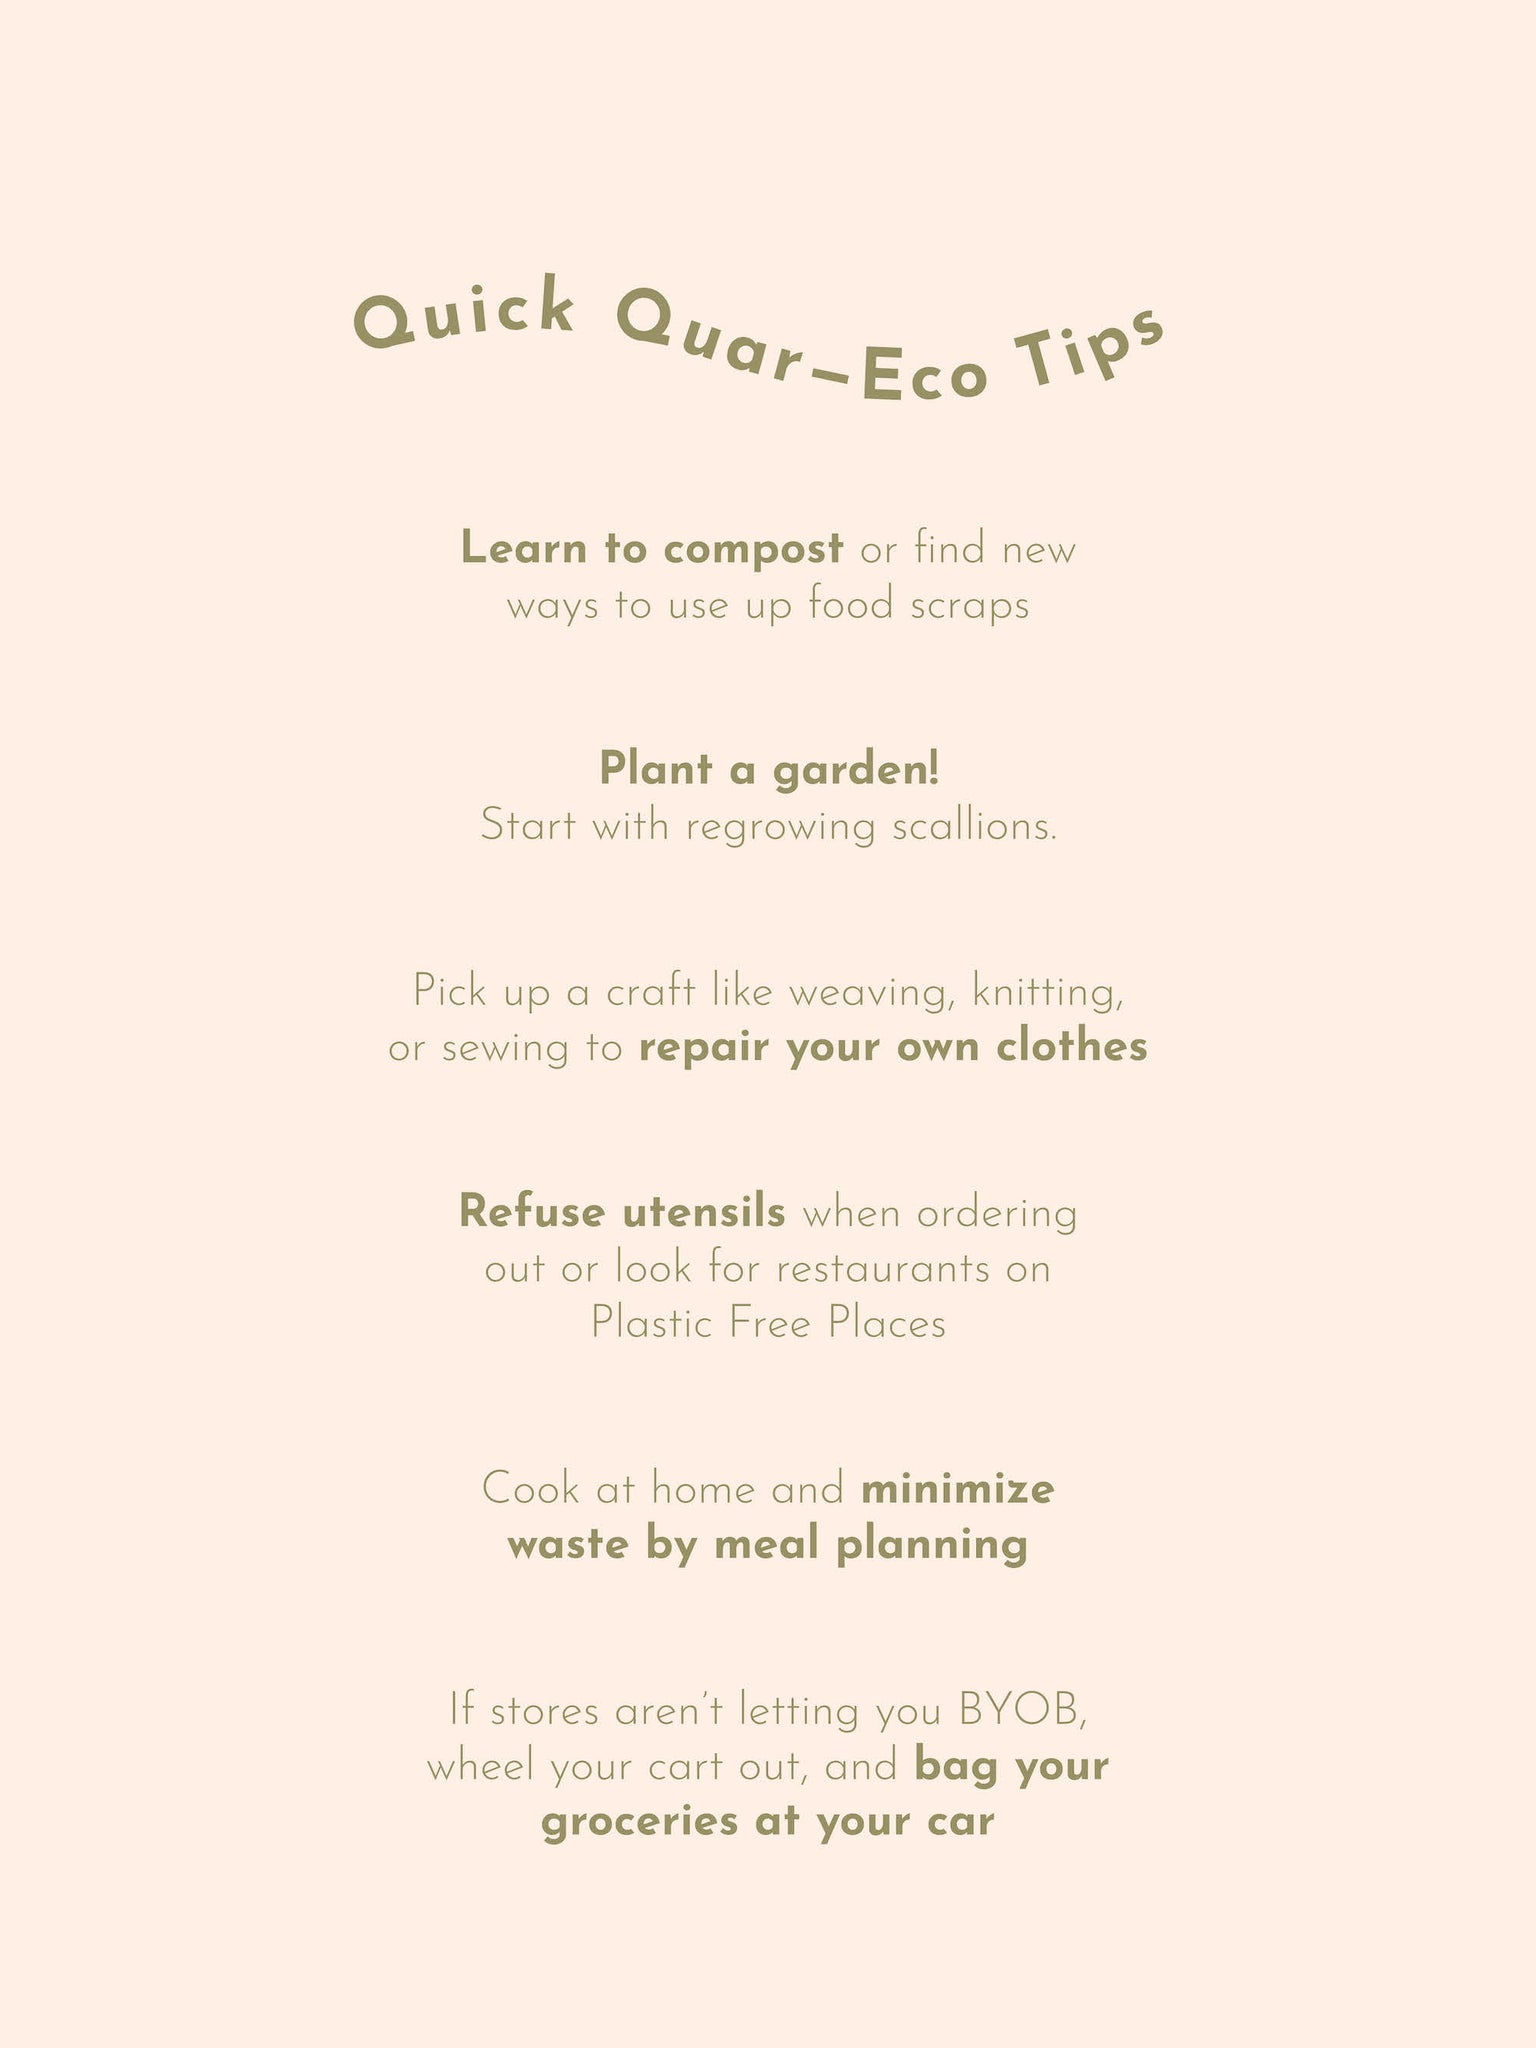 Quick Quar Eco-Tips: Learn to compost or find new  ways to use up food scraps   Plant a garden!  Start with regrowing scallions.   Pick up a craft like weaving, knitting,  or sewing to repair your own clothes   Refuse utensils when ordering  out or look for restaurants on  Plastic Free Places   Cook at home and minimize  waste by meal planning   If stores aren't letting you BYOB,  wheel your cart out, and bag your  groceries at your car